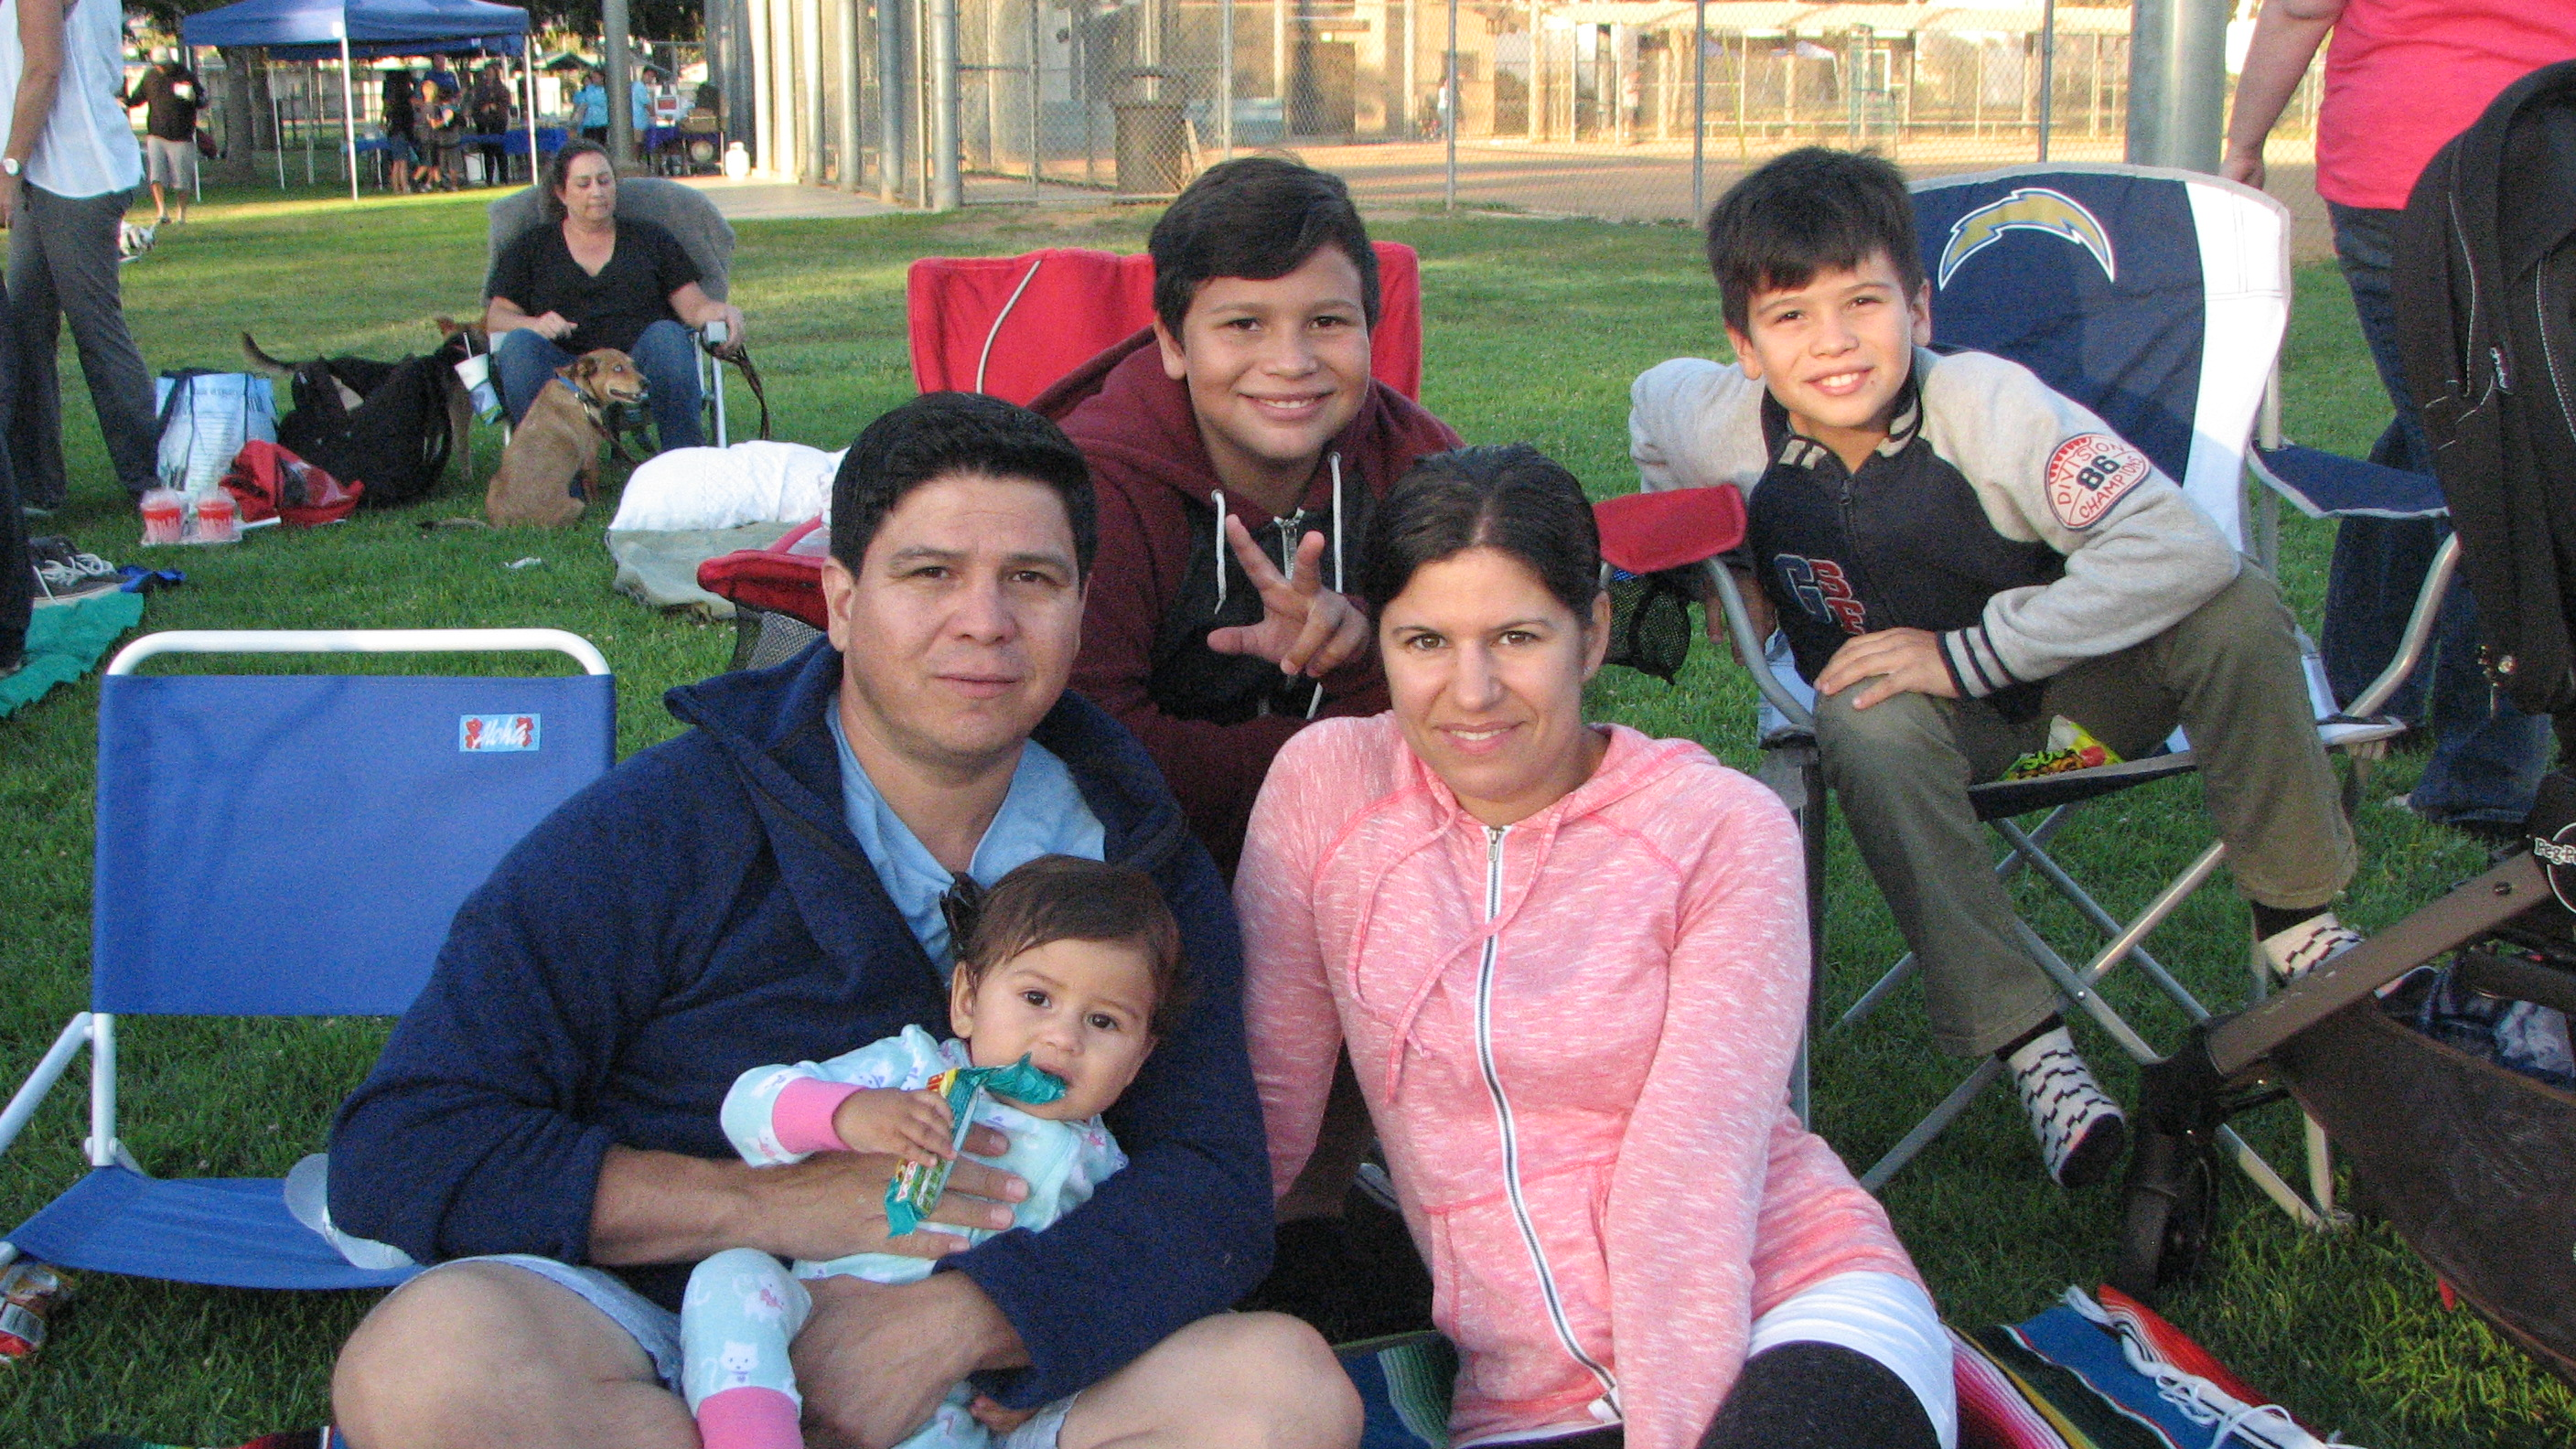 Summer Movies In The Park Poway Community Park Free Family Fun